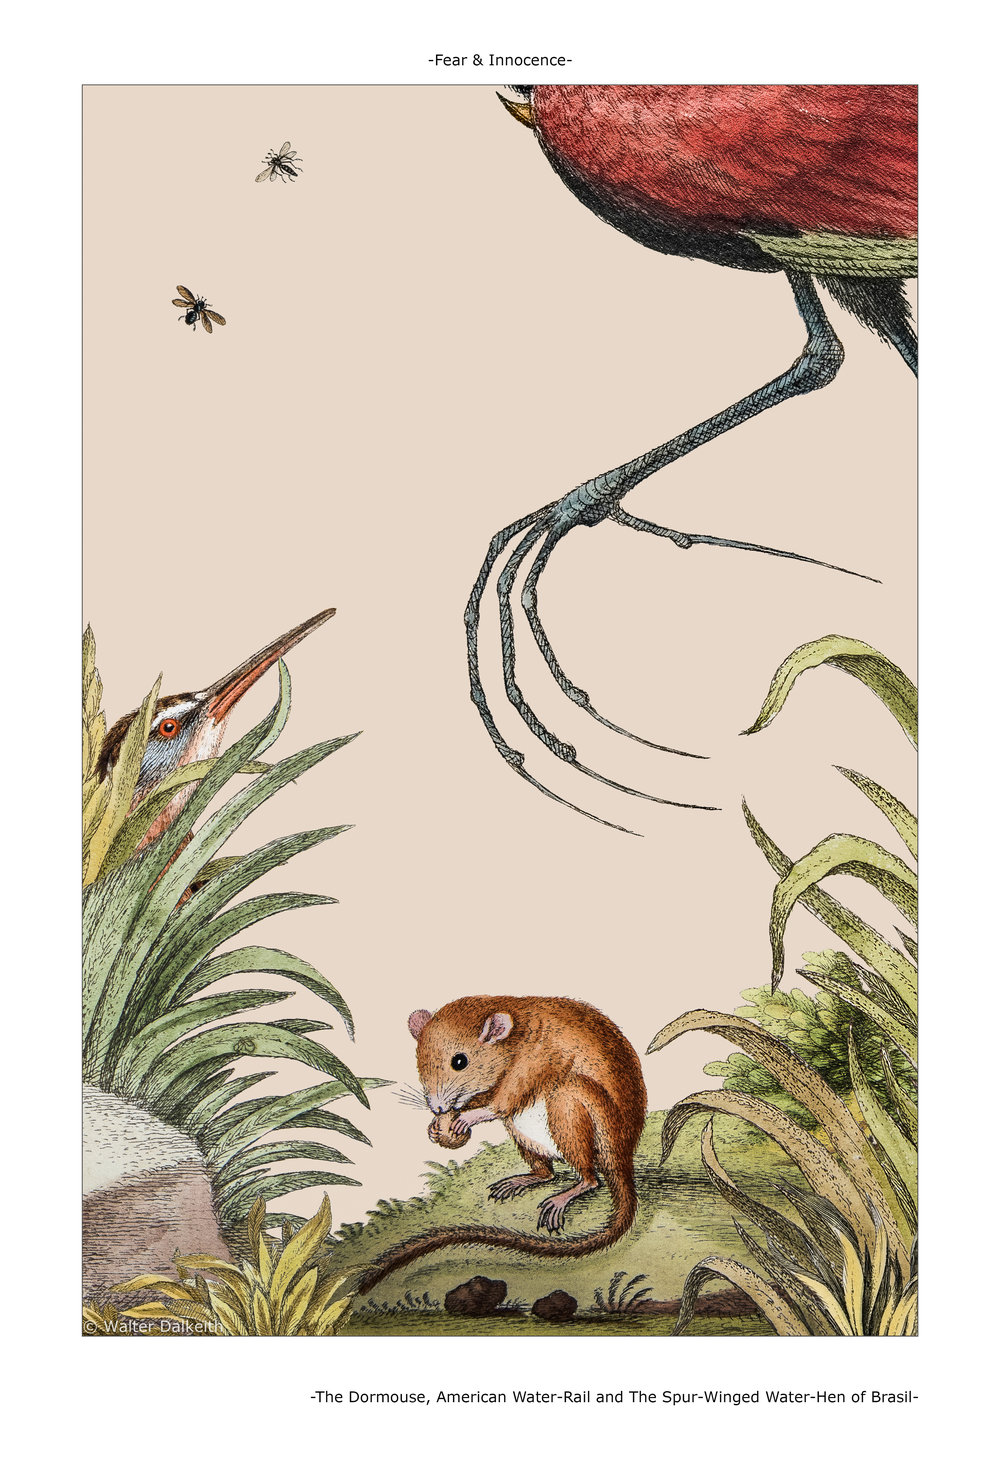 The Dormouse, American Water-Rail and The Spur-Winged Water-Hen of Brasil Main title.jpg